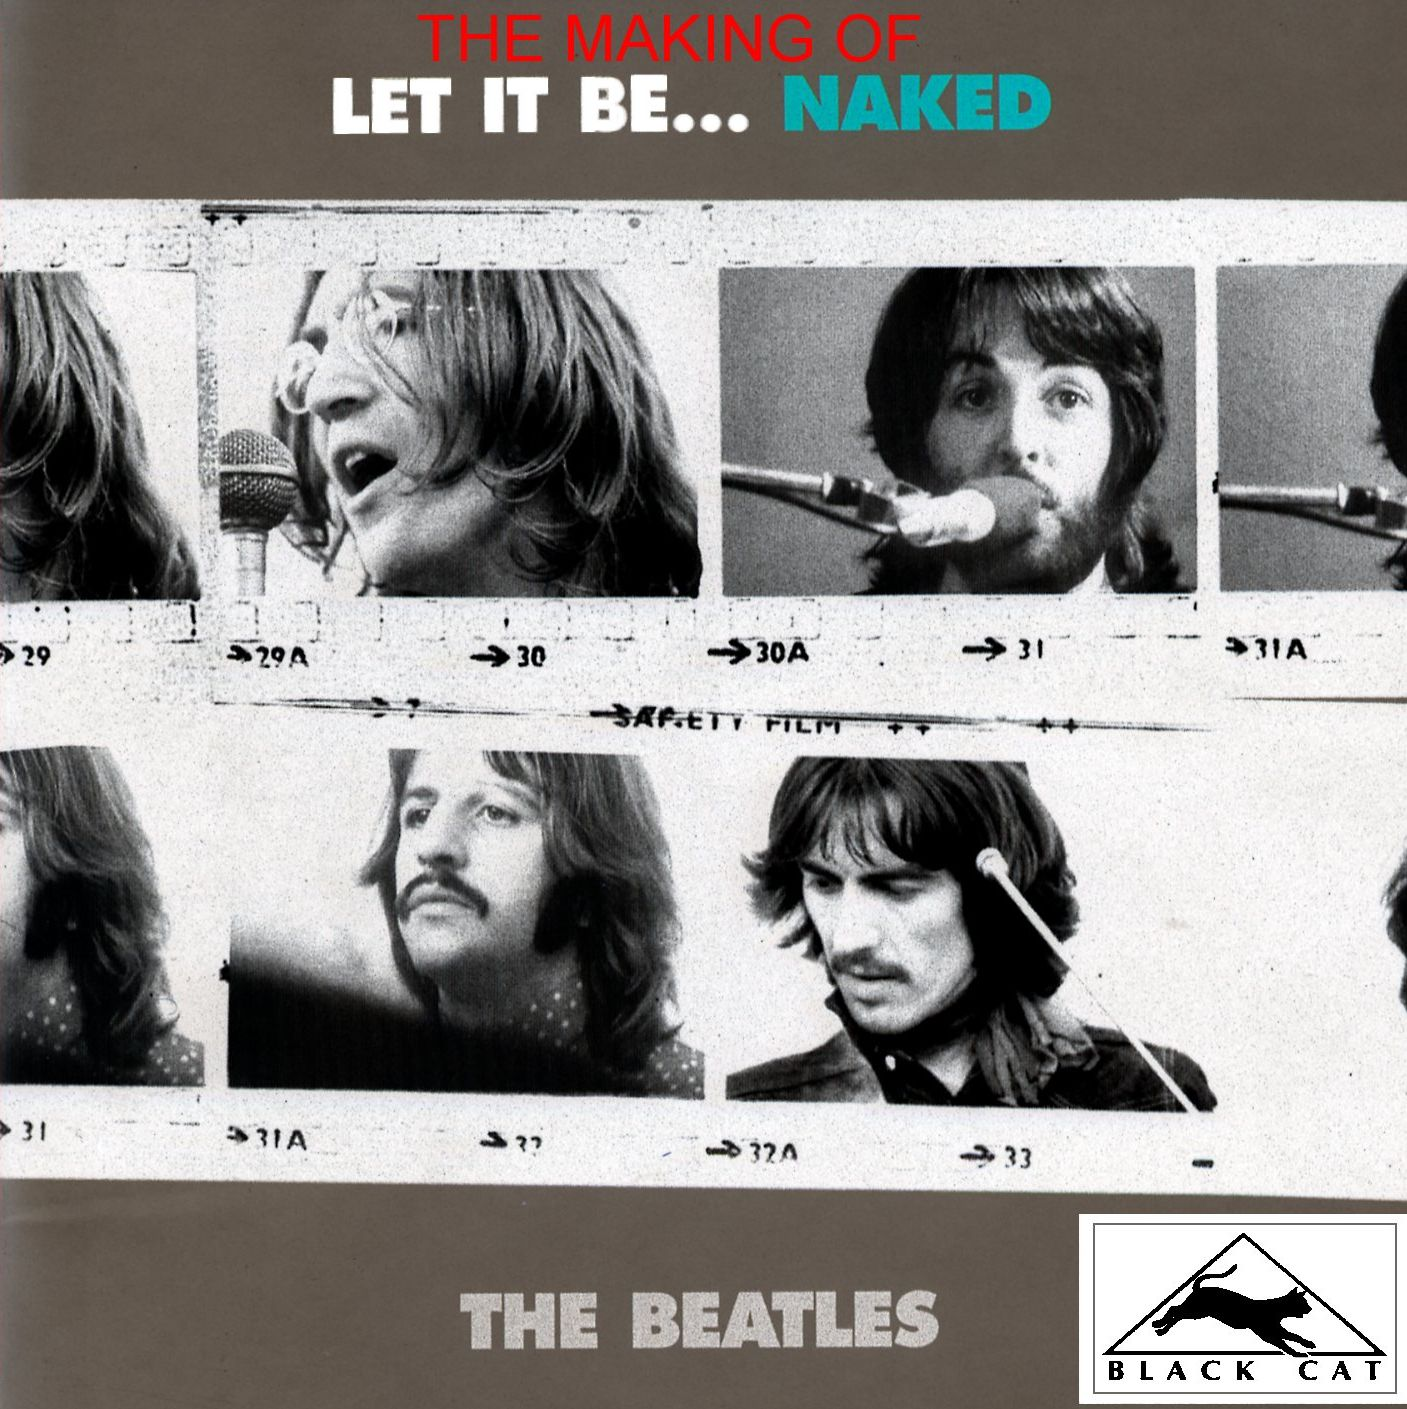 Lt It Be Naked Beatles 7